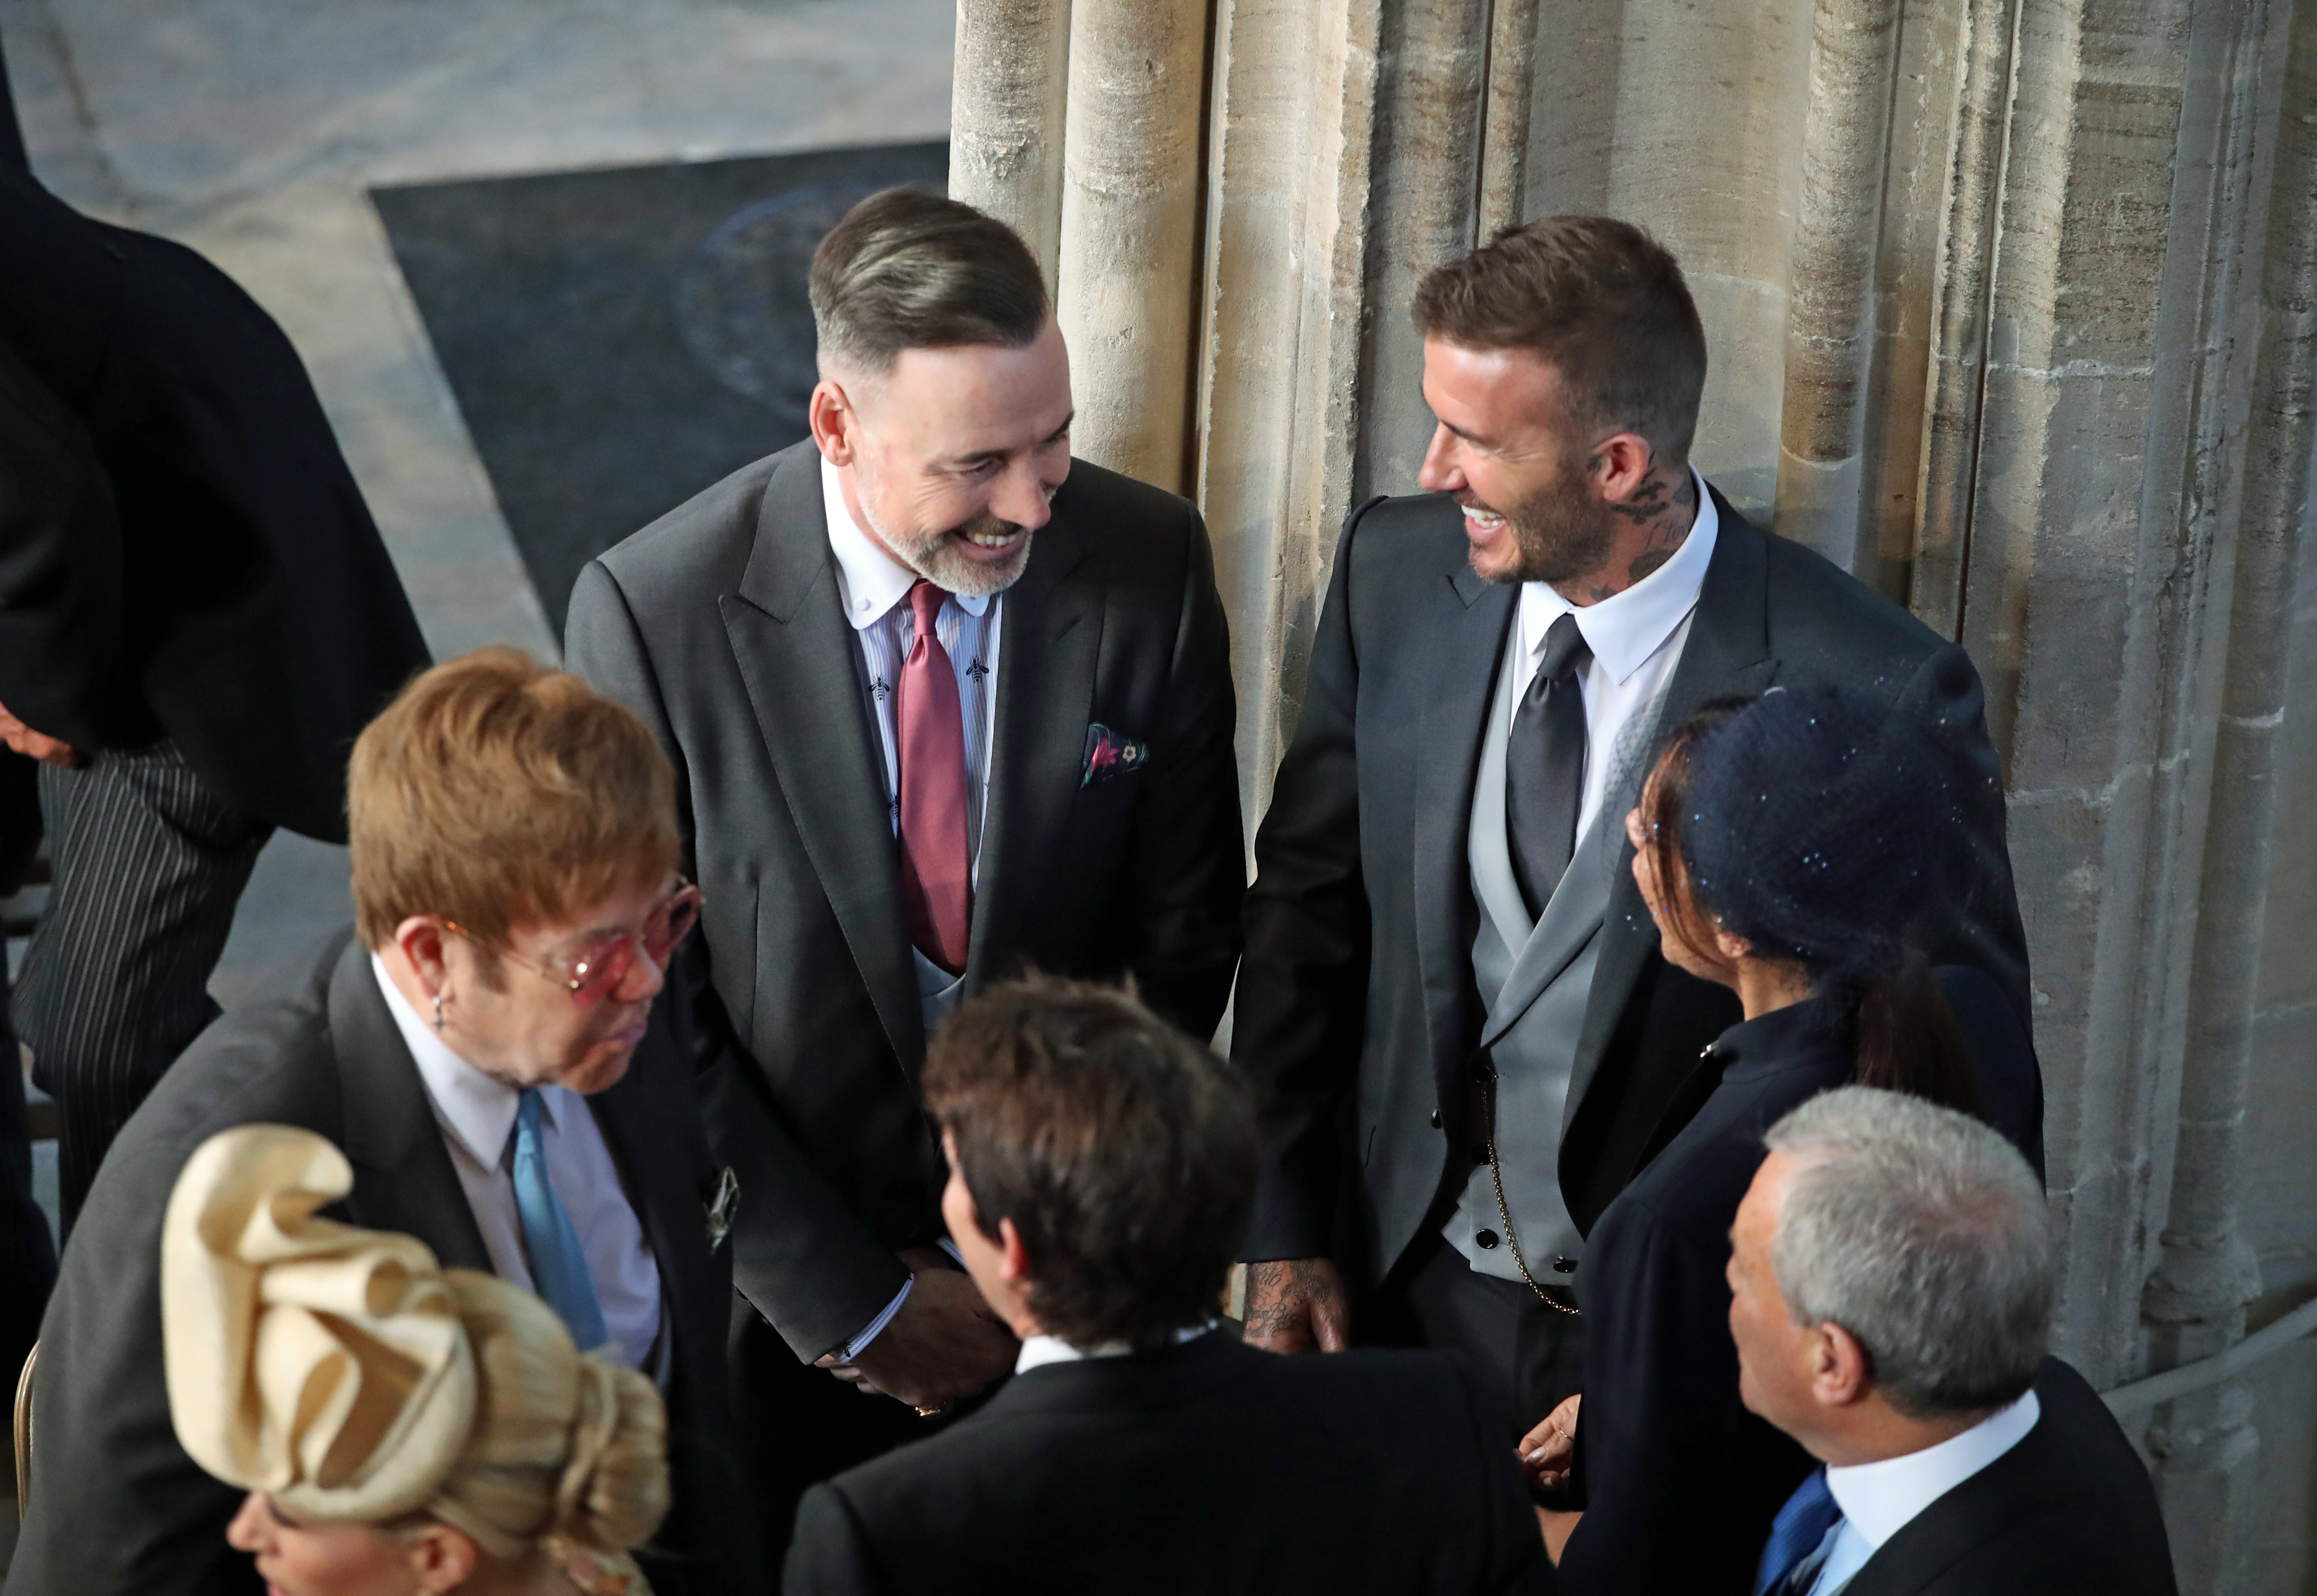 David and Victoria Beckham (both right) talk with Sir Elton John (left) and David Furnish as they arrive in St George's Chapel at Windsor Castle for the wedding of Prince Harry and Meghan Markle.